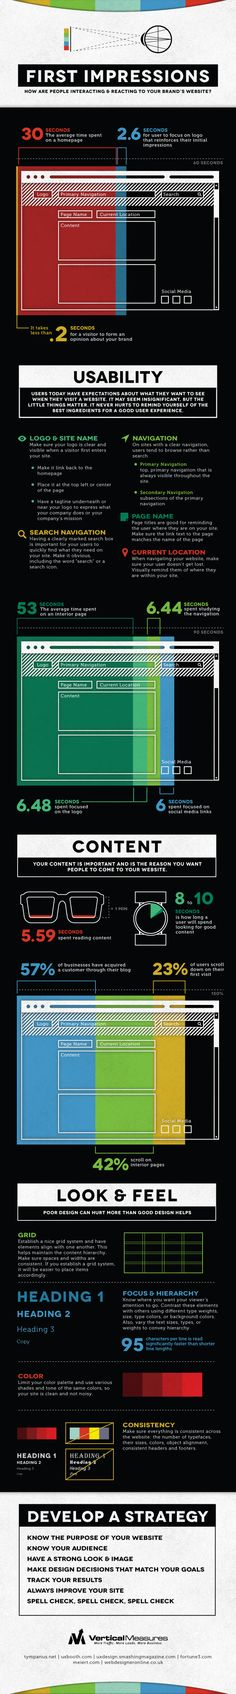 First Impressions: How are-people interacting and reacting to your brands website #infographic #design #ux #in